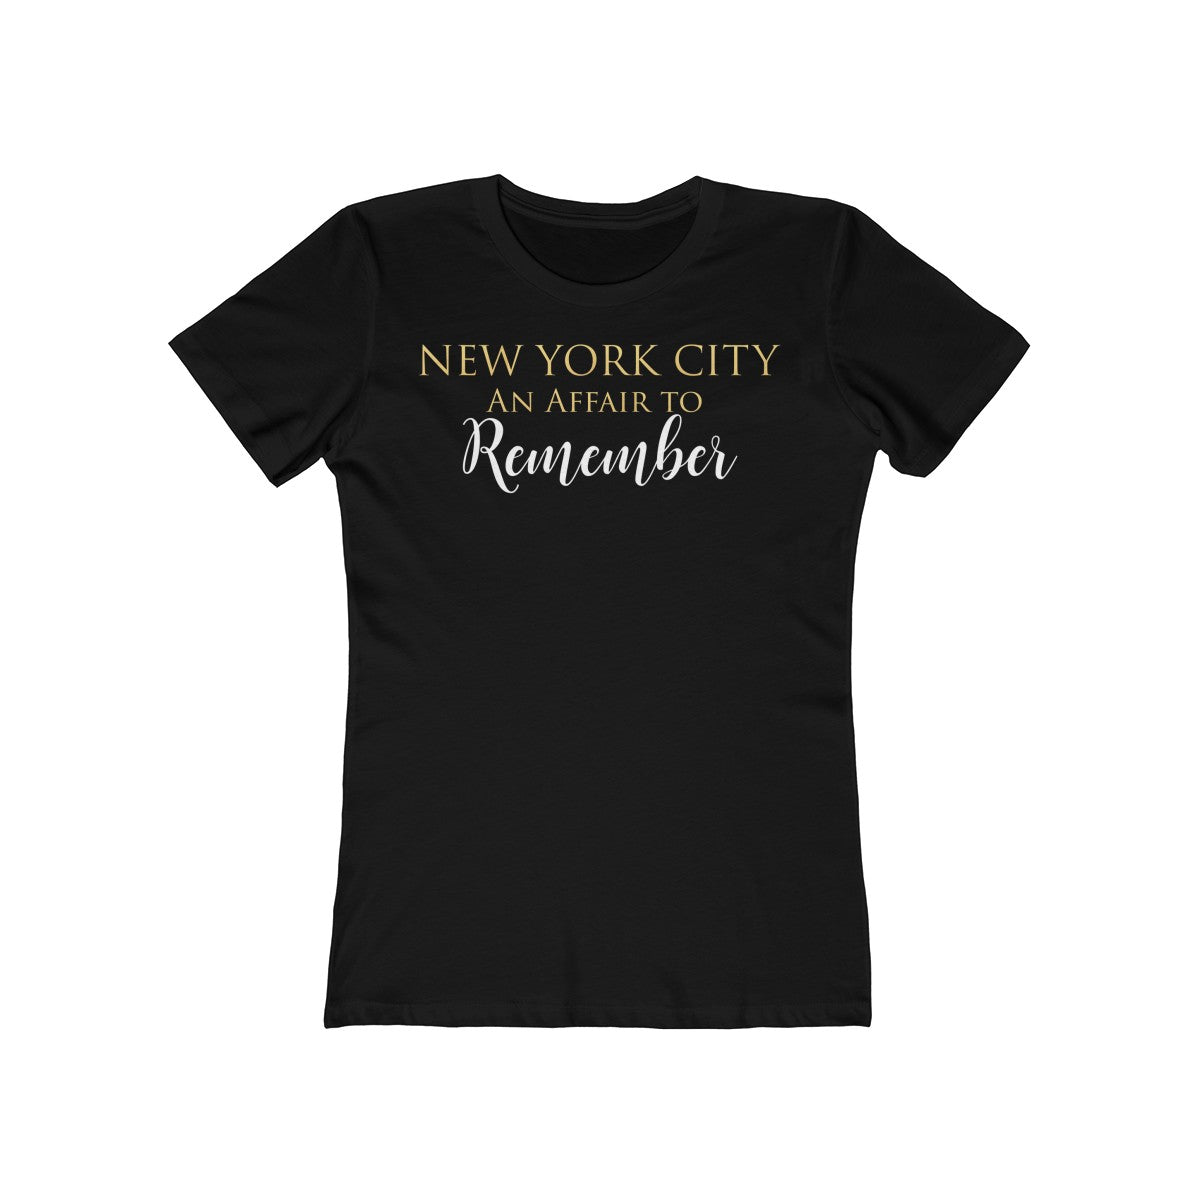 "New York City ""An Affair to Remember"" - Women's The Boyfriend Tee"